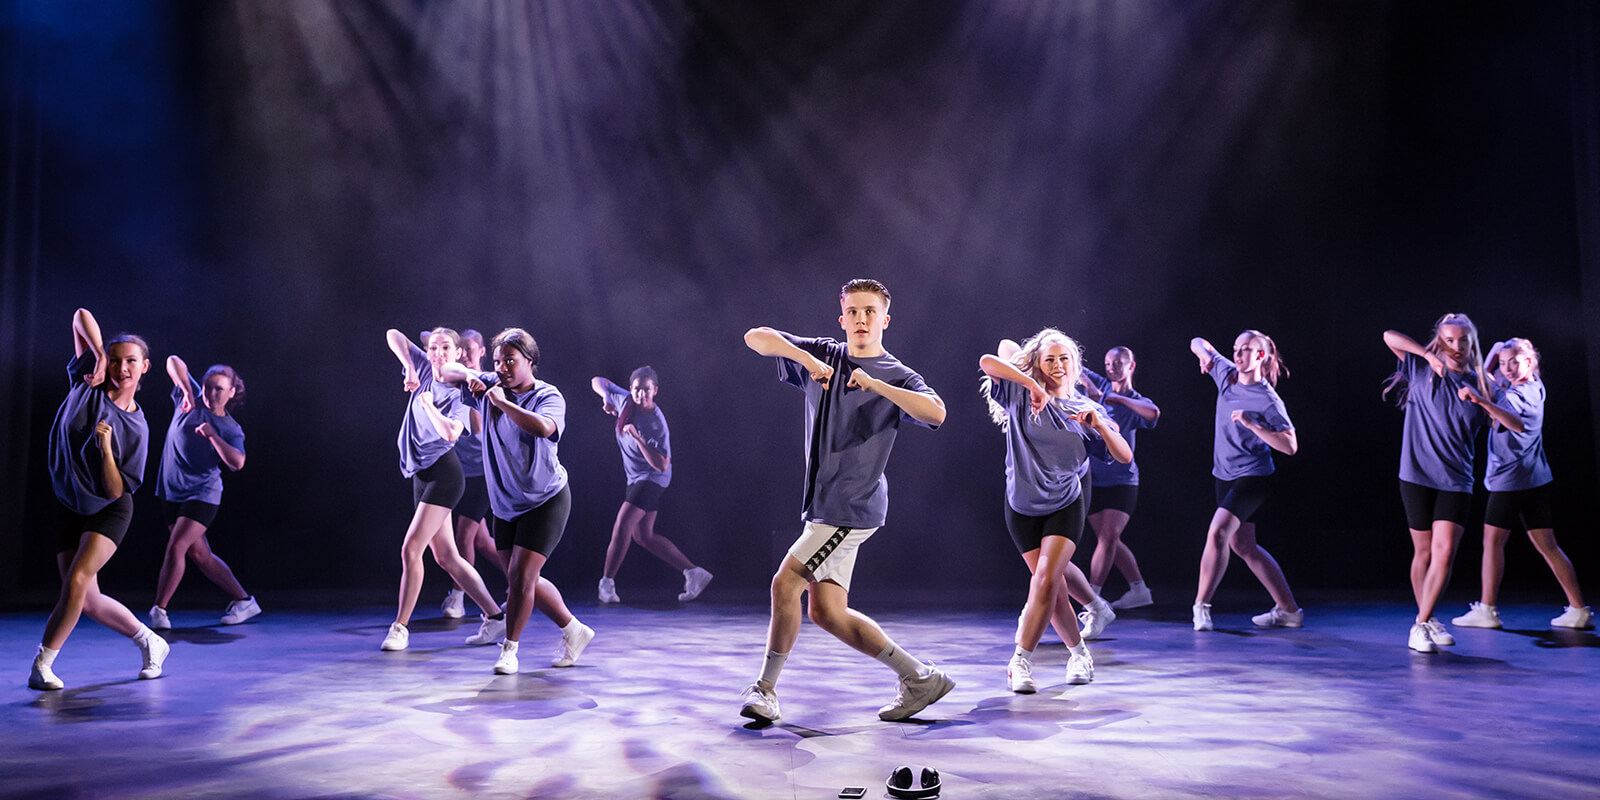 Arts1 Evening & Weekend Class: Sixth Form Dance Course